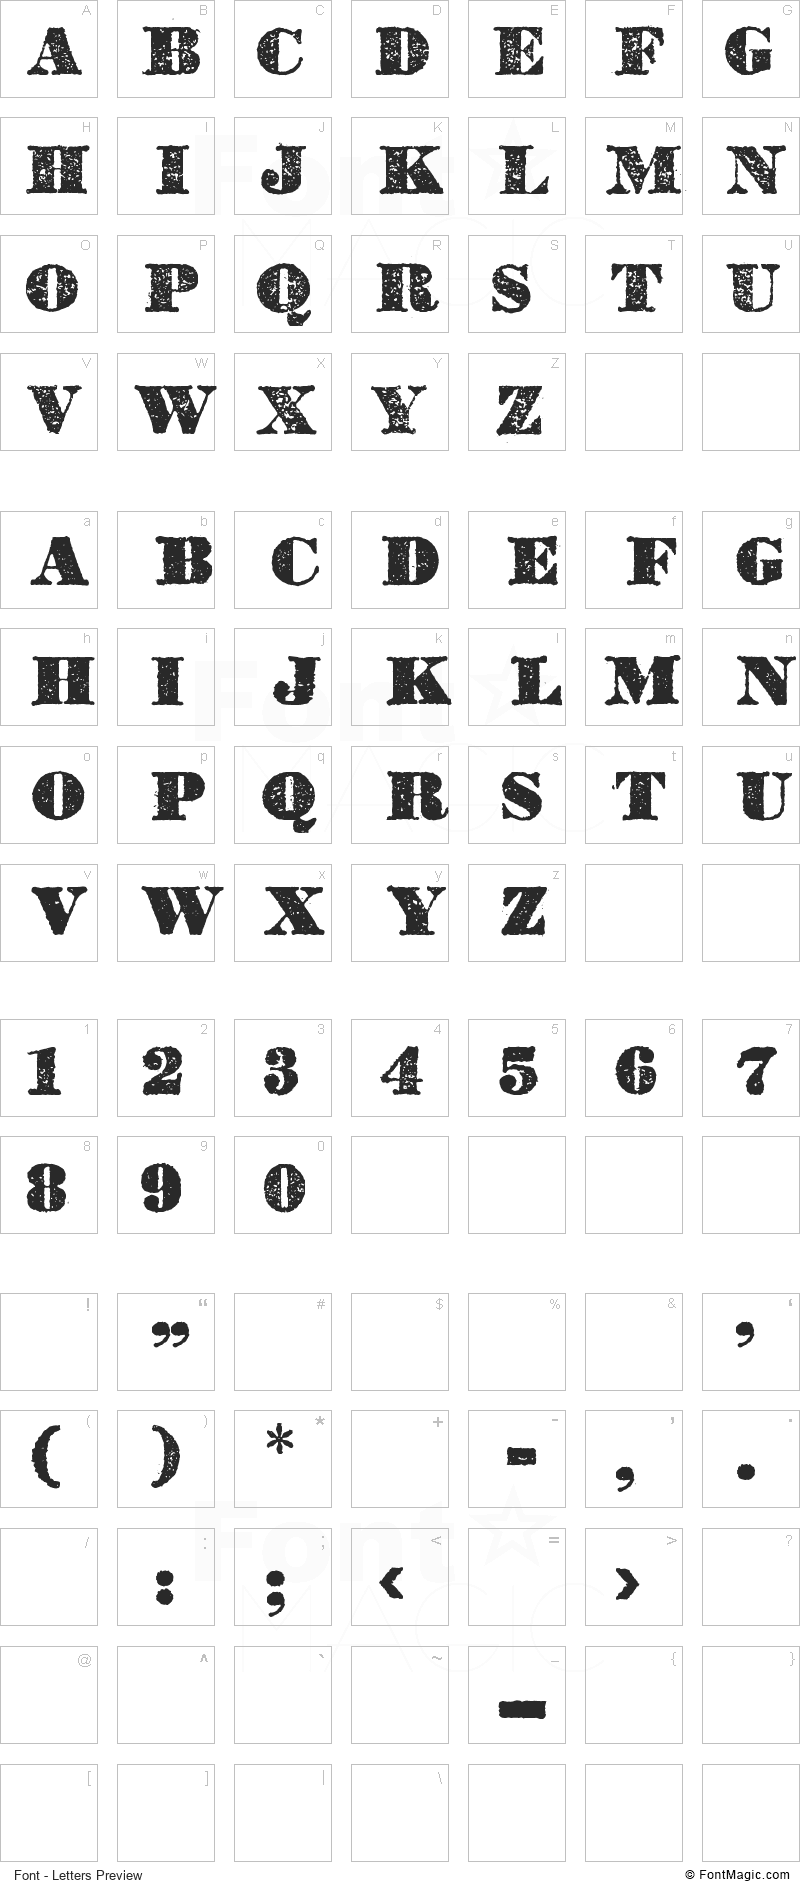 Dickson's Tales Font - All Latters Preview Chart